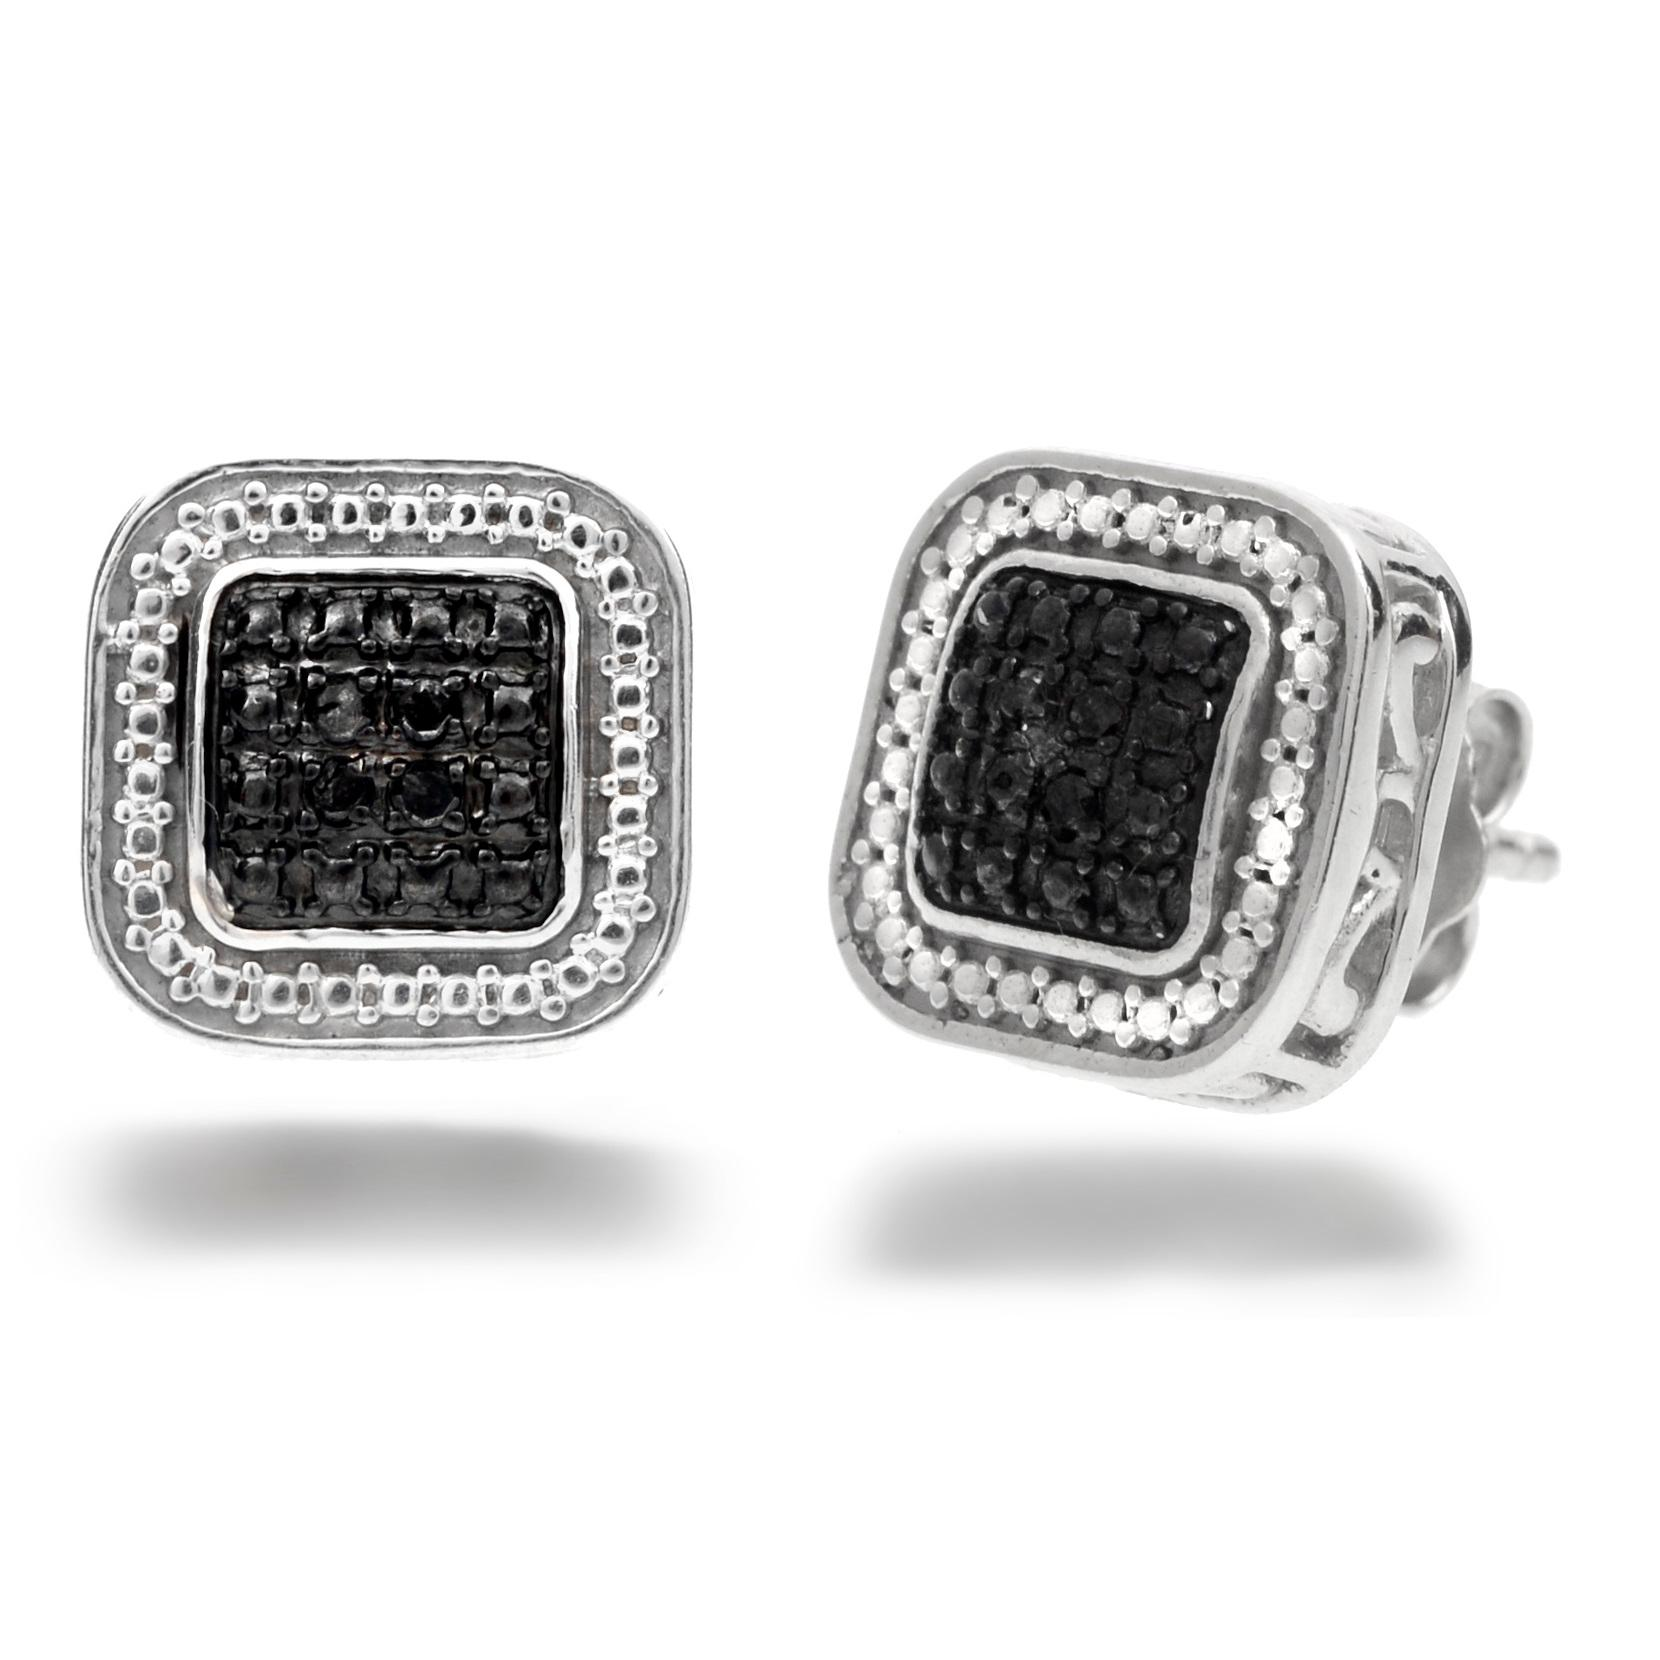 Amanda Rose Collection 1/10ct tw  Black Diamond Stud Earrings in Sterling Silver